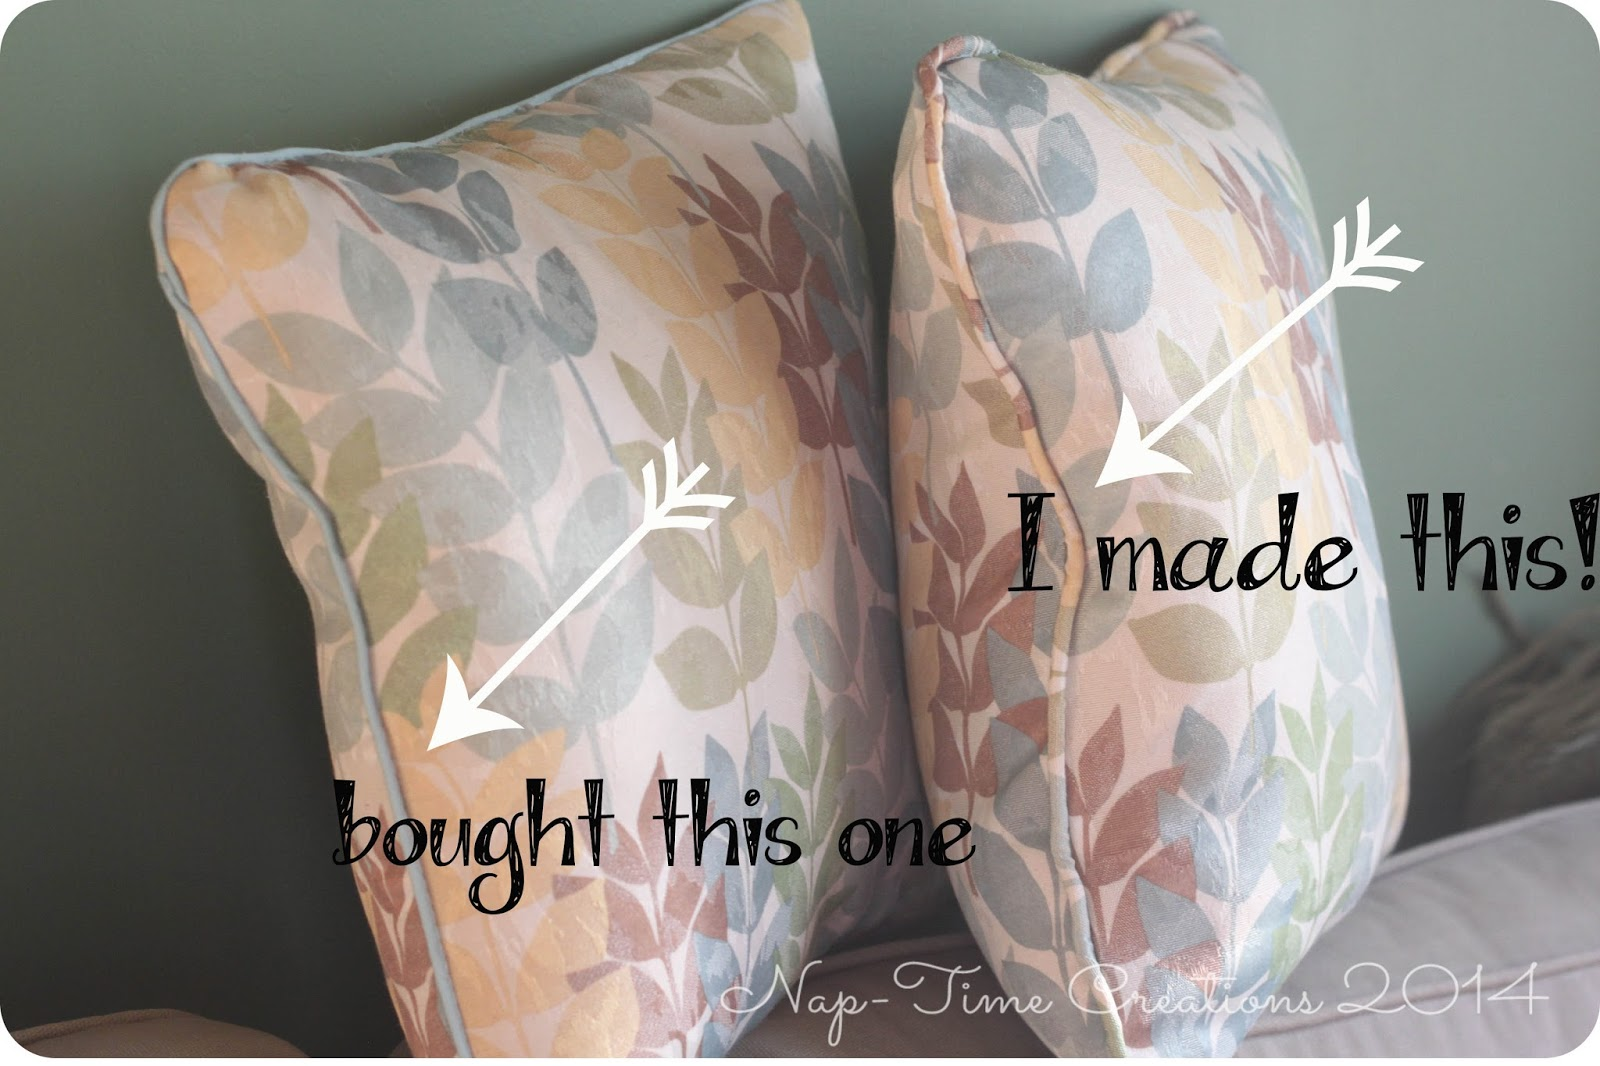 How To Make A Throw Pillow With Piping : Sewing a Throw Pillow with Piping {Tutorial} - Nap-time Creations